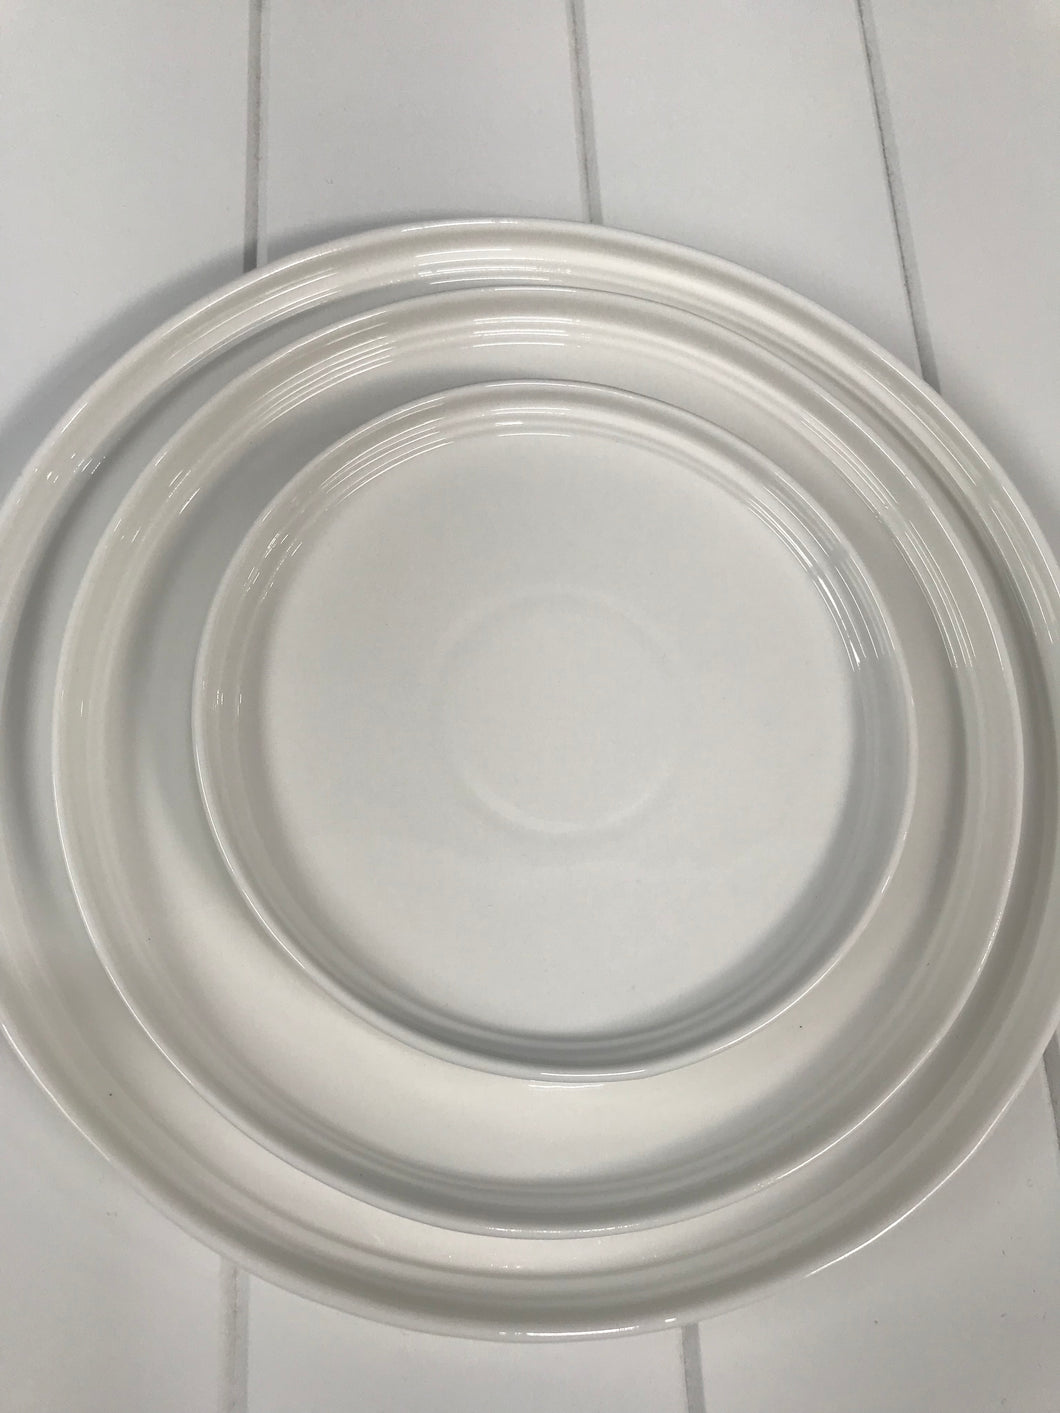 Merchant Medium Round Plate White